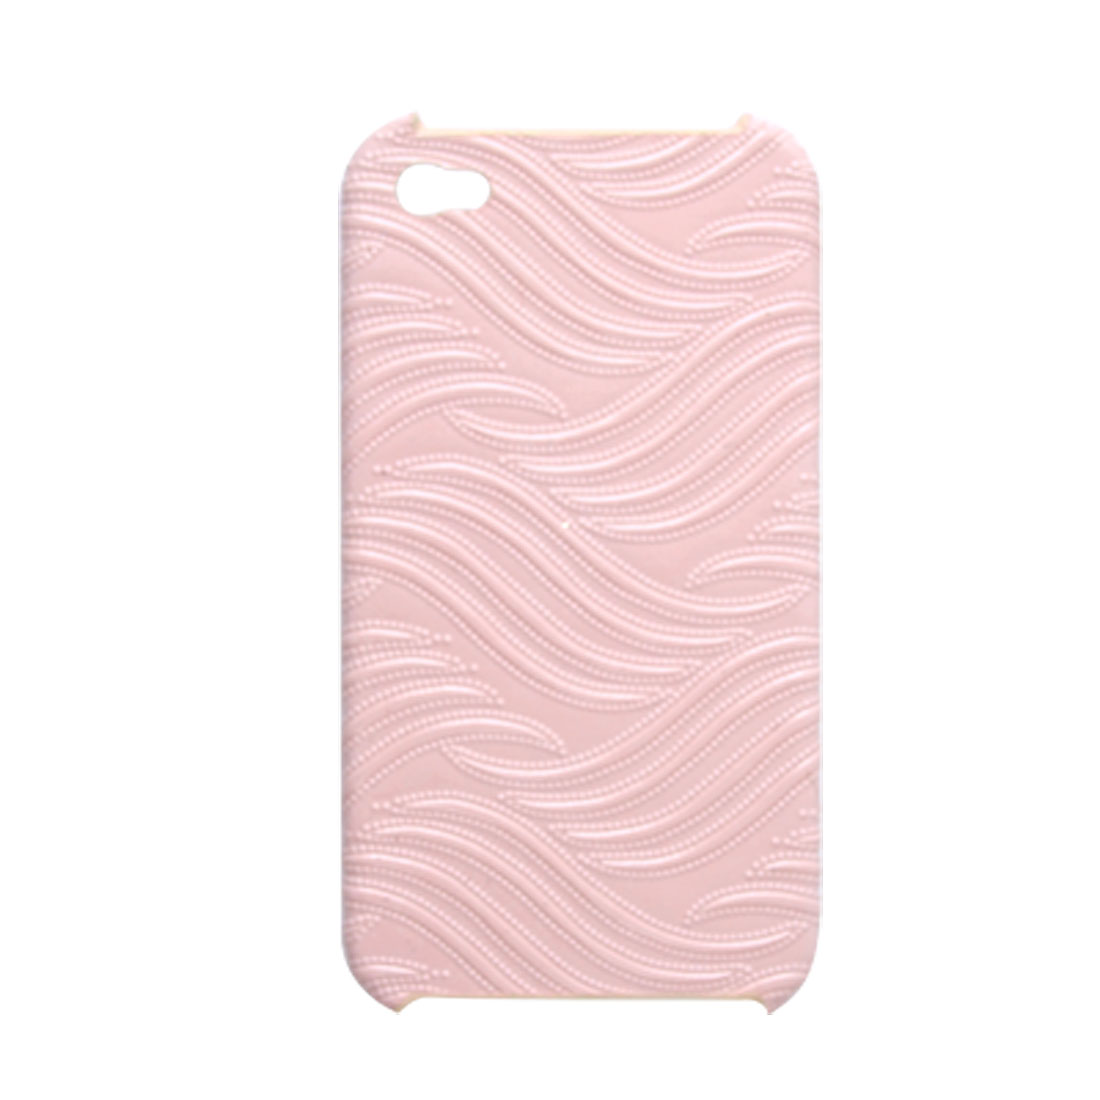 Pink Texturing Faux Leather Covered Hard Plastic Case for iPhone 4 4G